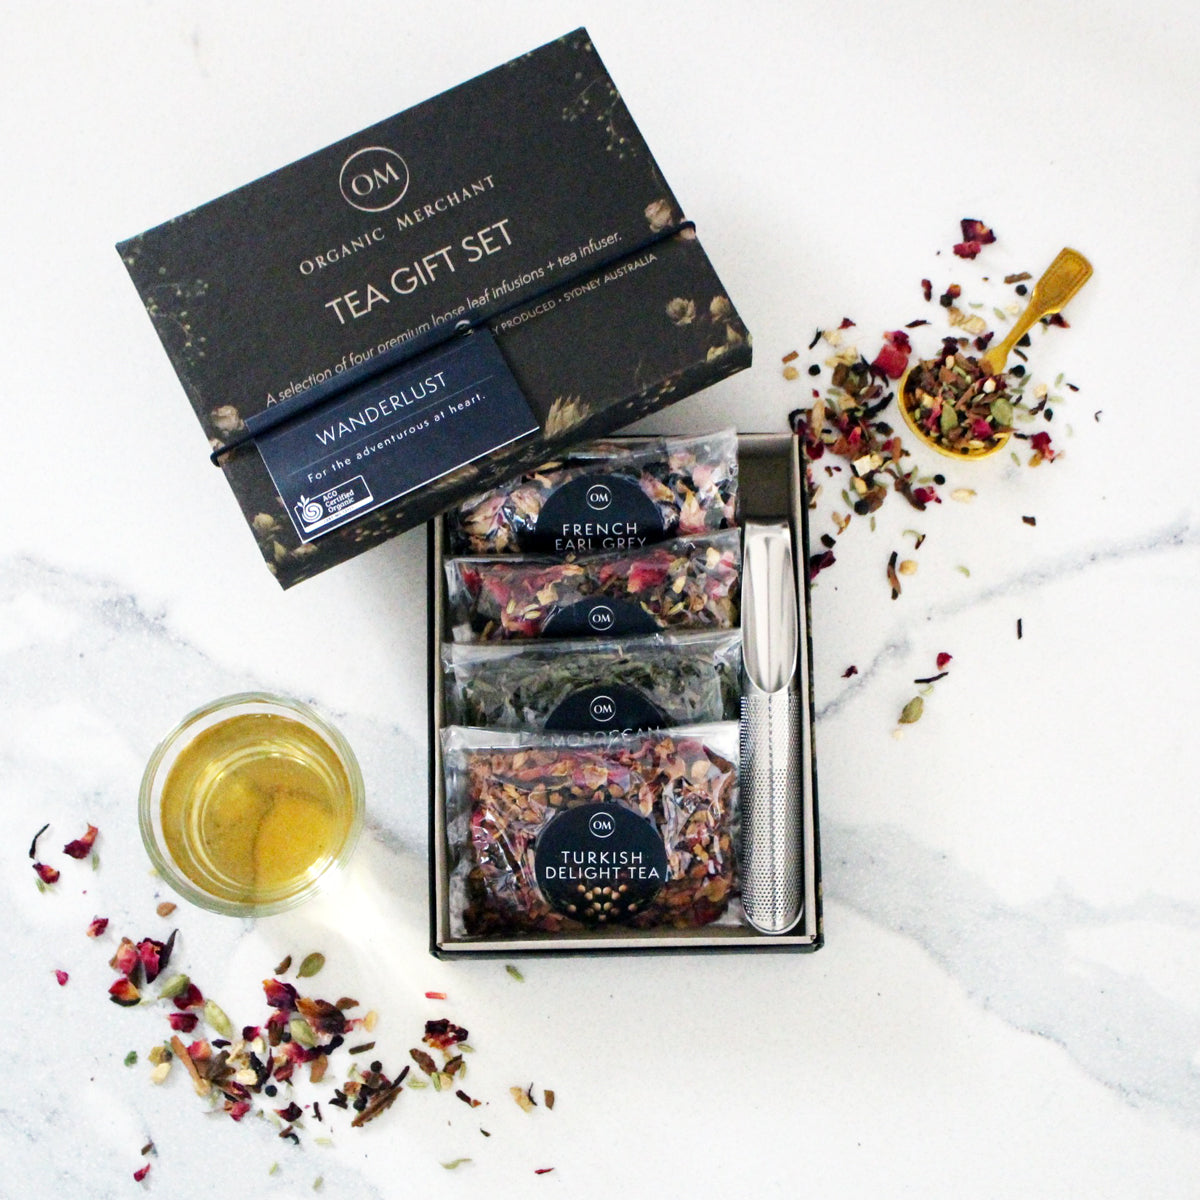 The Swirl Box Wanderlust Tea Gift Set - Loose Leaf and certified organic, comes in a gift box with a tea infuser